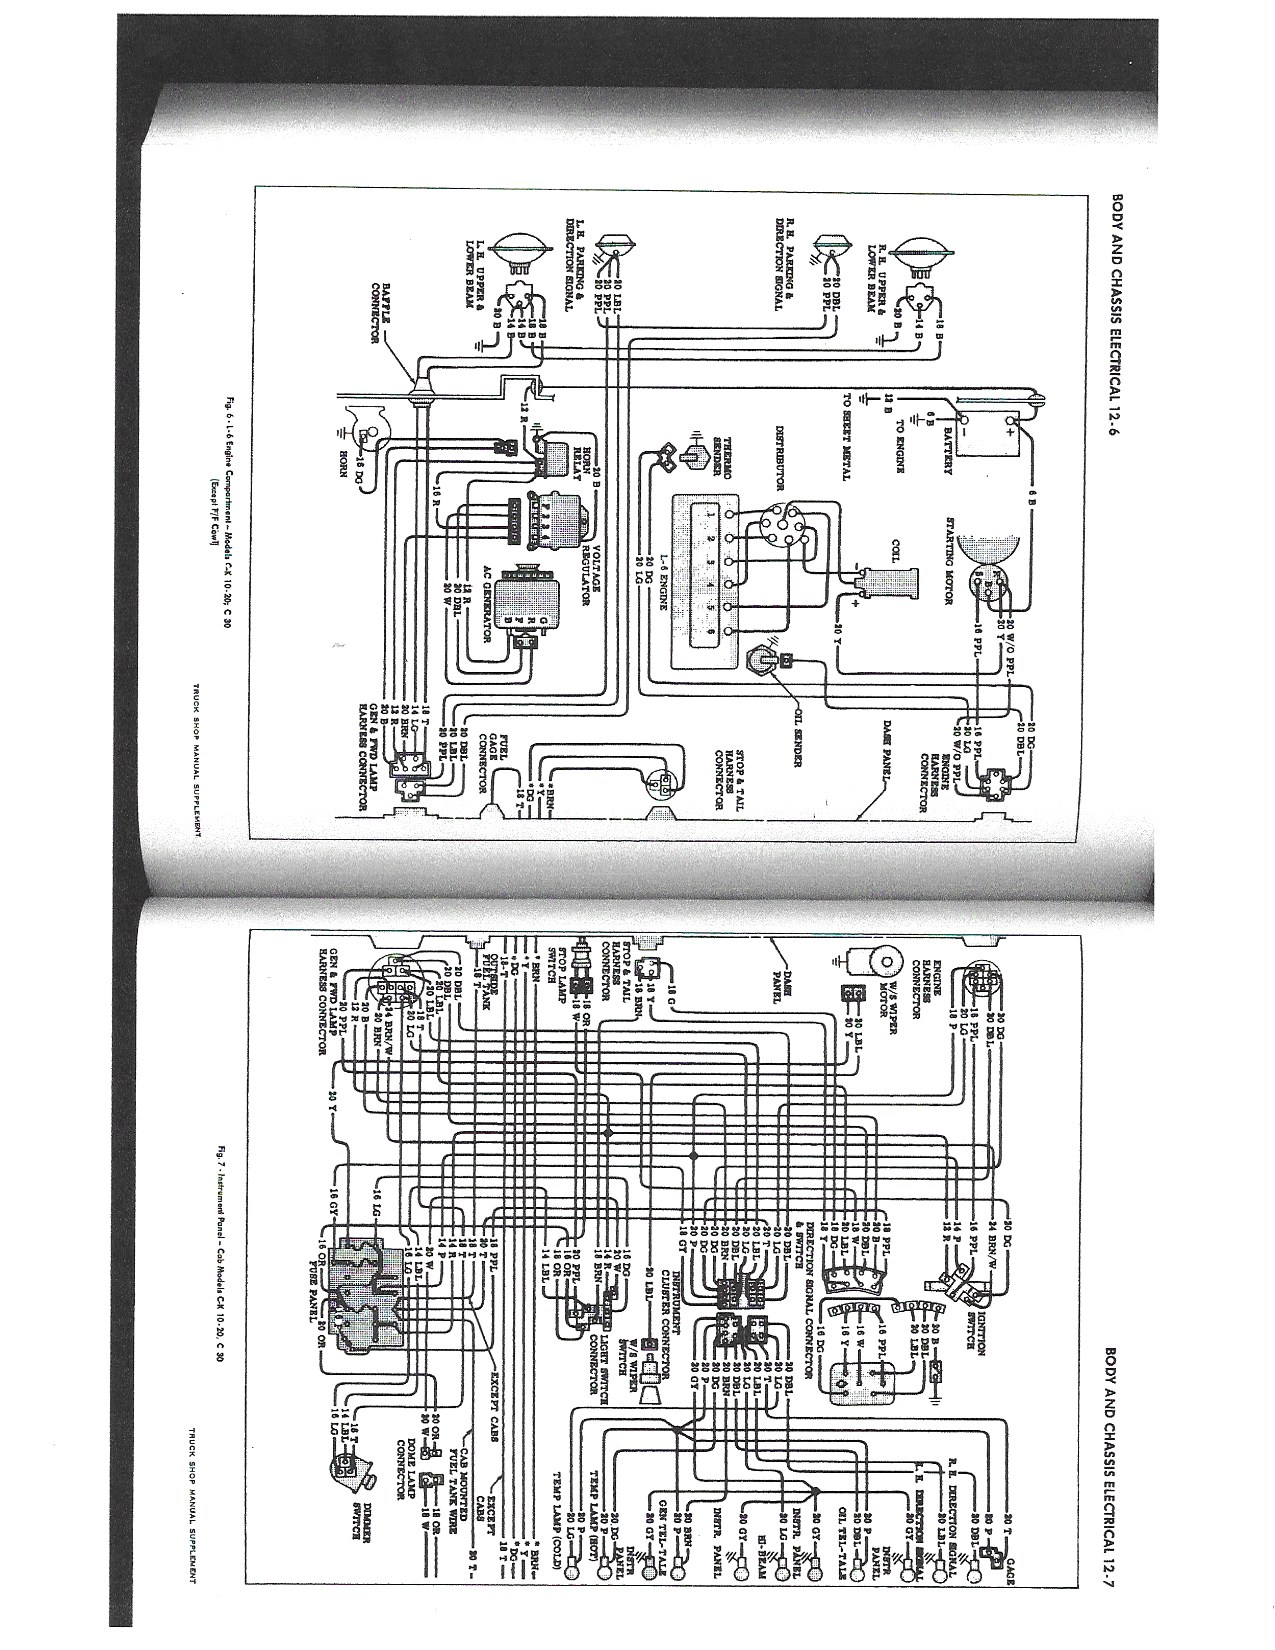 Diagram Wiring Diagram 65c 10 Full Version Hd Quality 65c 10 Diagramstrice Dolcialchimie It